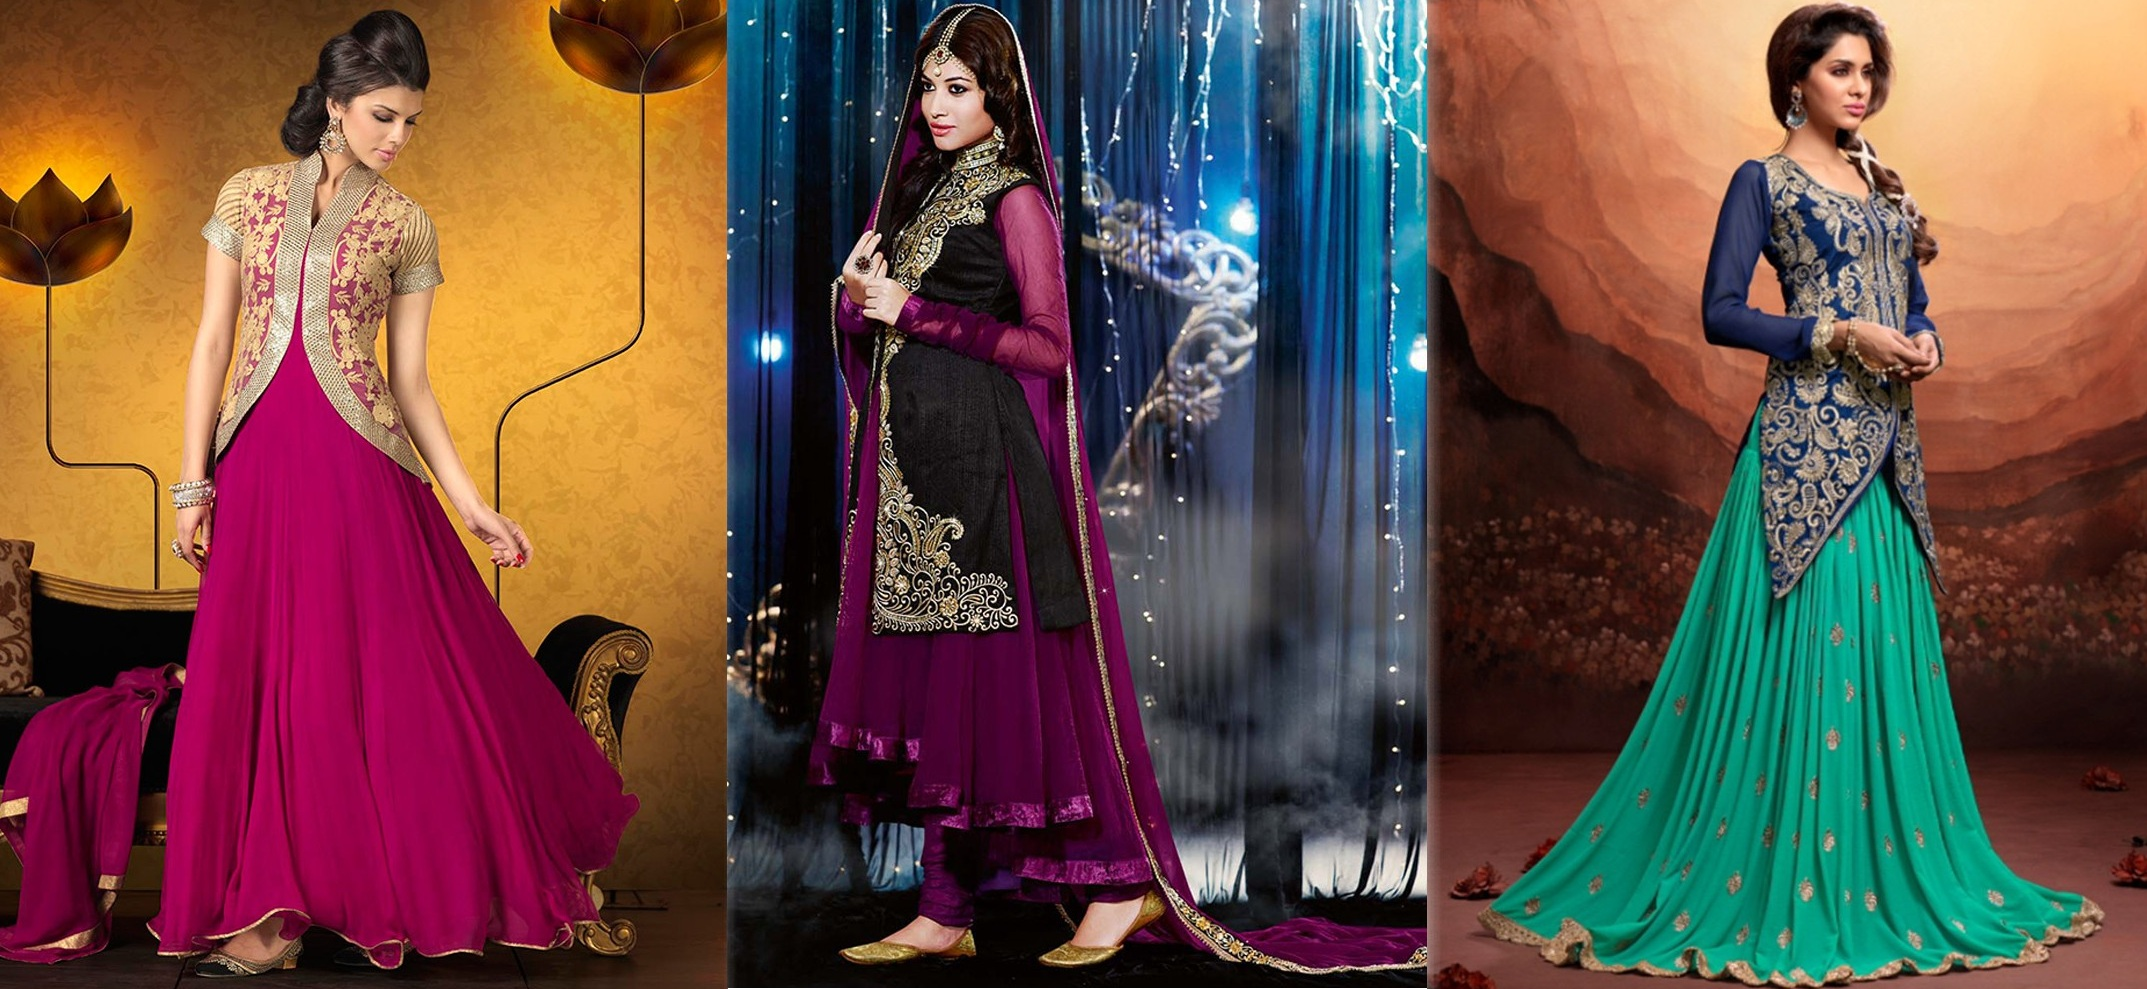 Latest Indian Jacket Style Dresses Gowns Anarkali Suits 2016 17